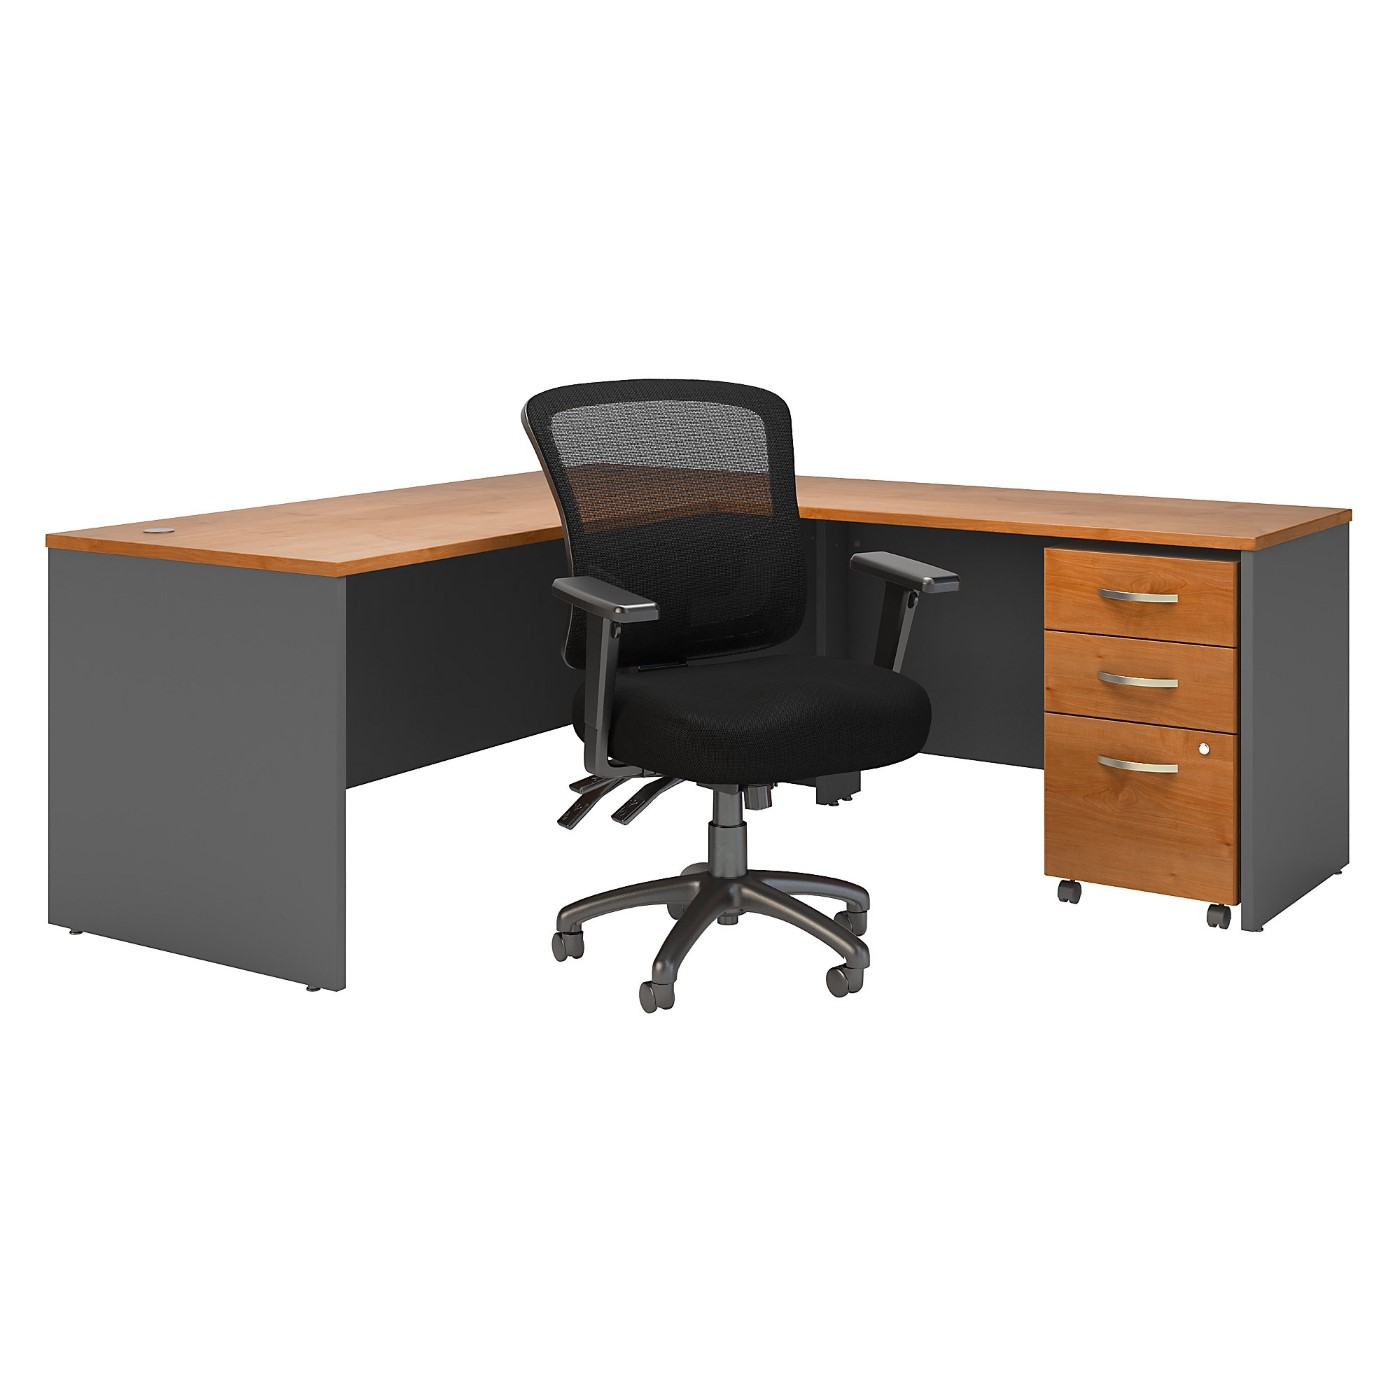 BUSH BUSINESS FURNITURE SERIES C 72W L SHAPED DESK WITH MOBILE FILE CABINET AND MID BACK MULTIFUNCTION OFFICE CHAIR. FREE SHIPPING